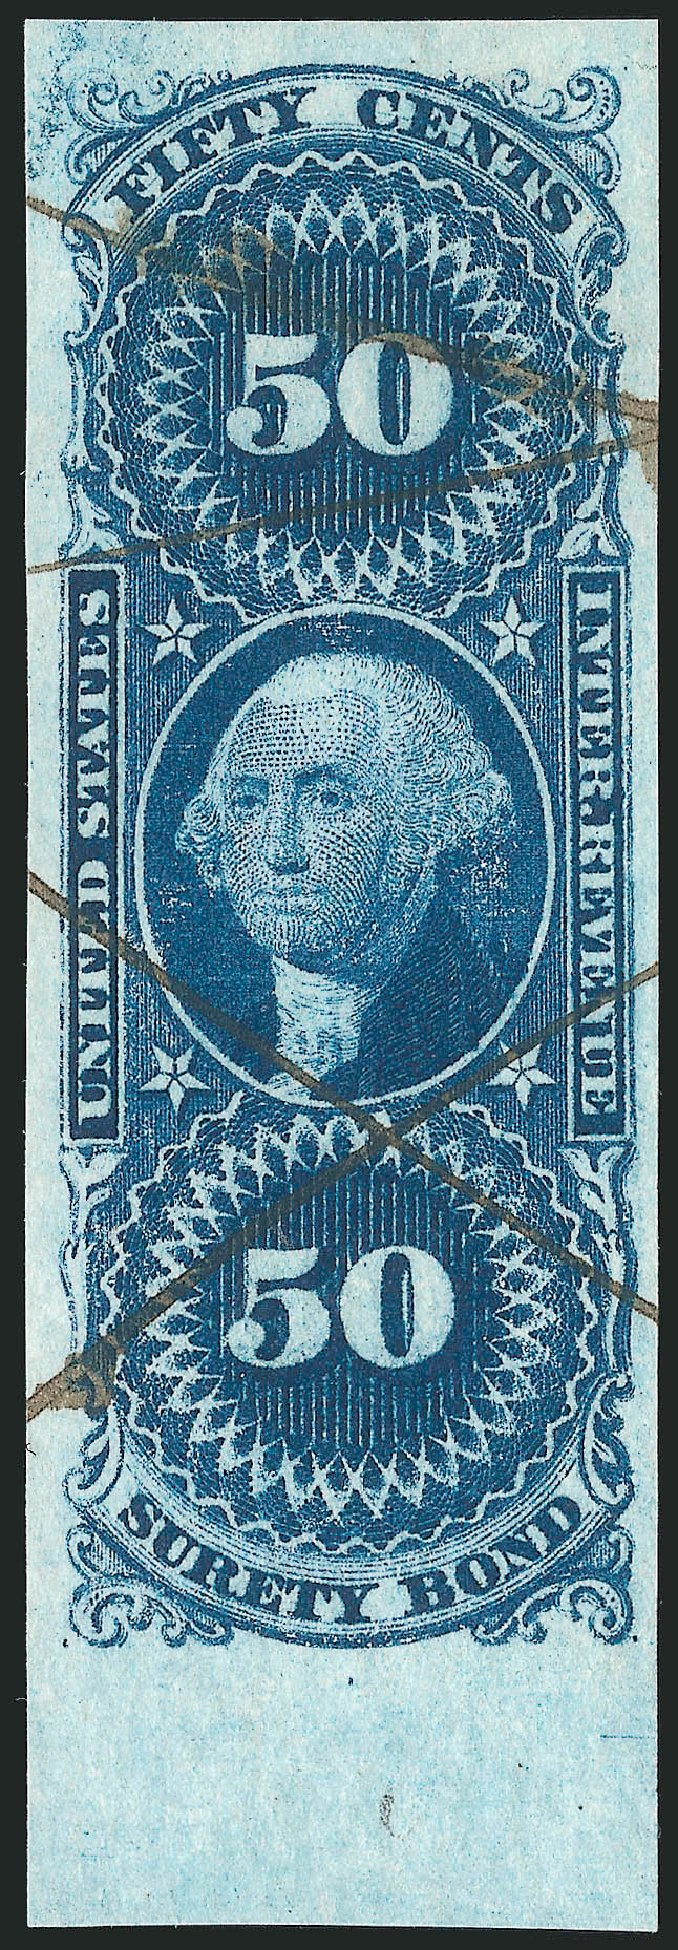 US Stamp Prices Scott Catalog R63 - 50c 1862 Revenue Surety Bond. Robert Siegel Auction Galleries, Dec 2014, Sale 1089, Lot 229